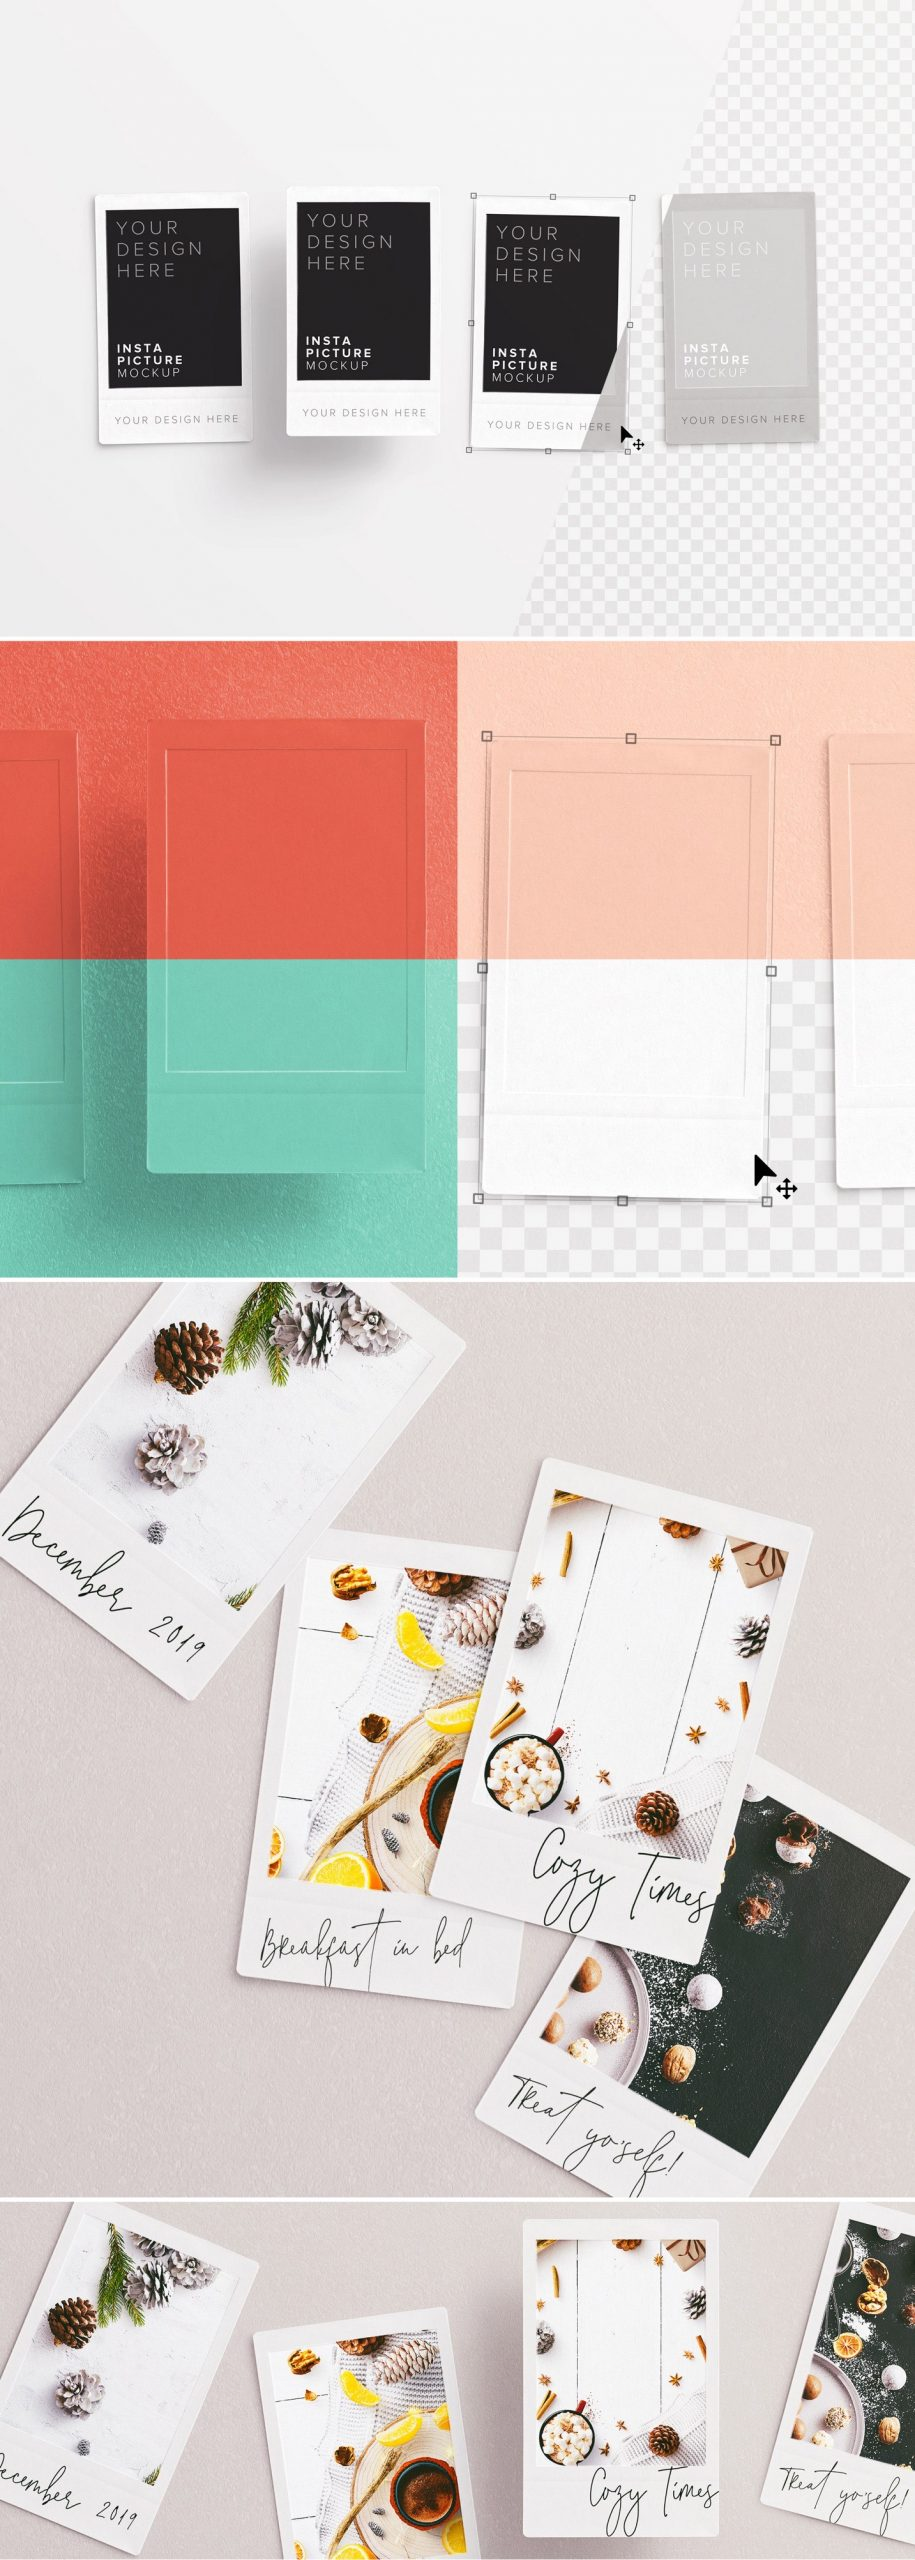 insta pictures frame mockup preview1 1 scaled